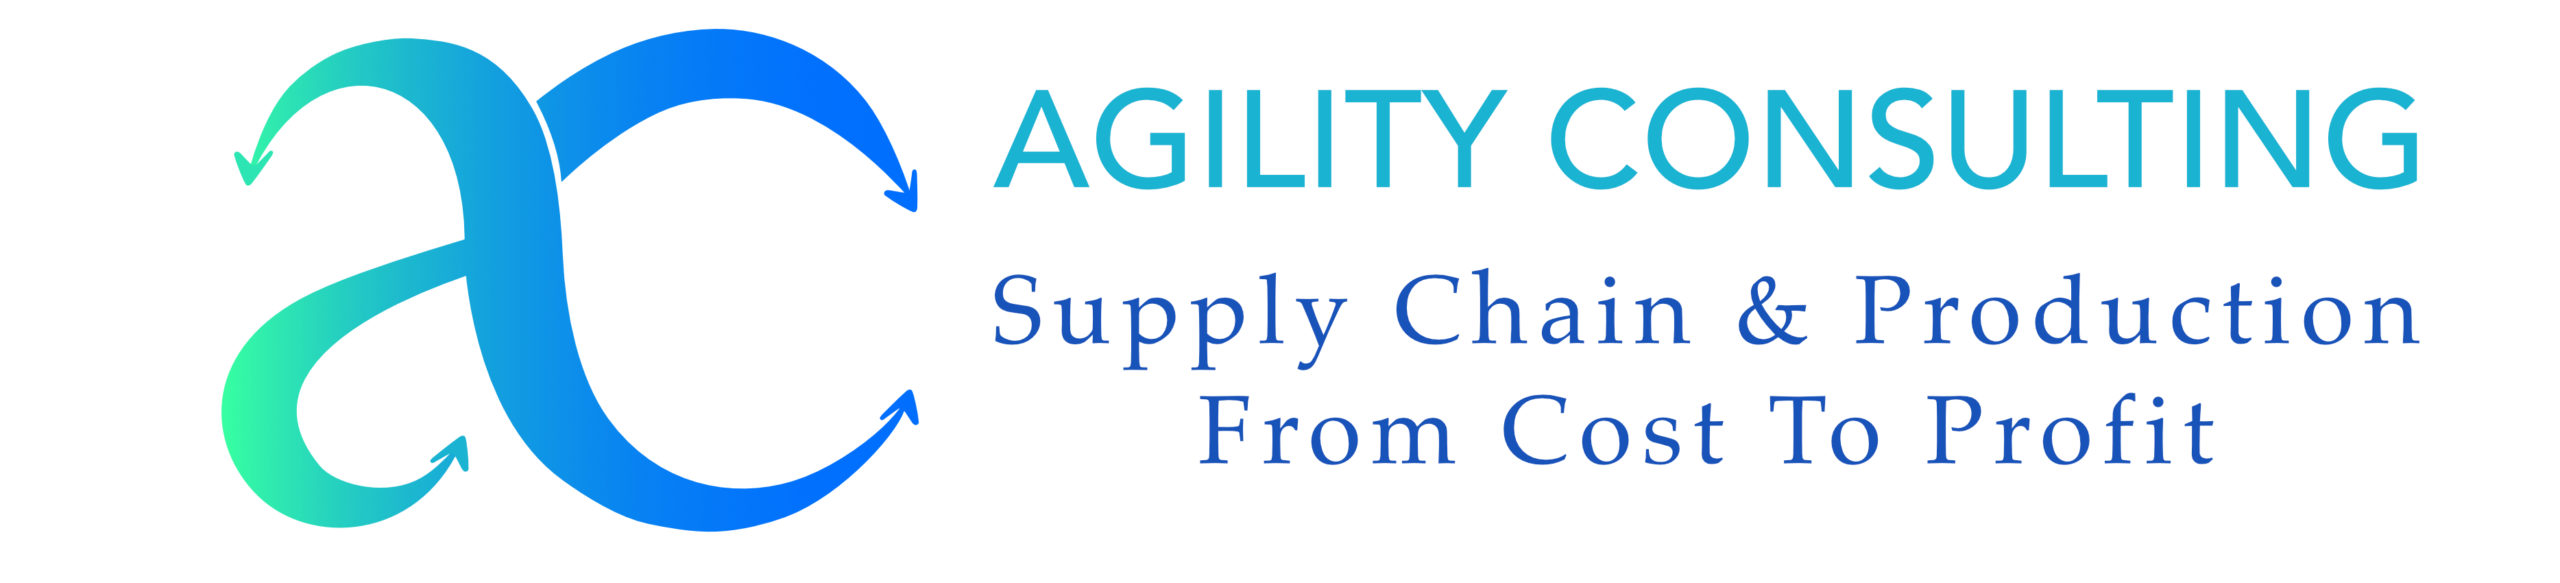 https://www.agilityconsulting.be/wp-content/uploads/2021/03/Logo-Agility-Consulting-scaled.jpg